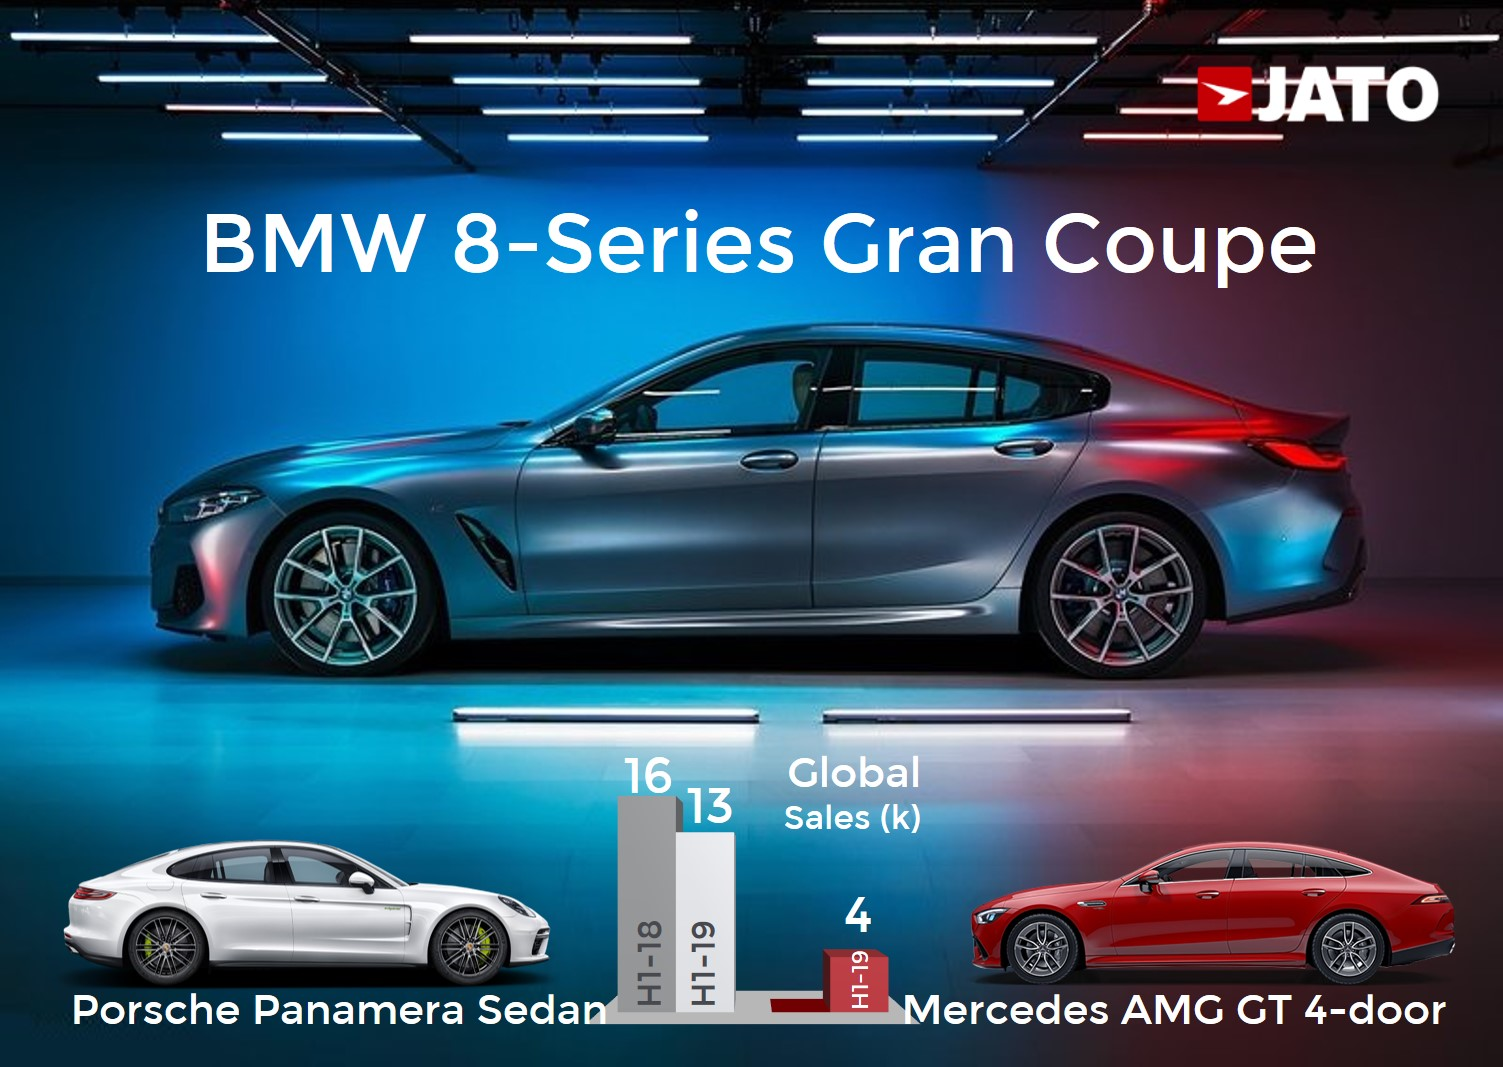 Gran Coupe Bmw 8 Series For The Family Jato